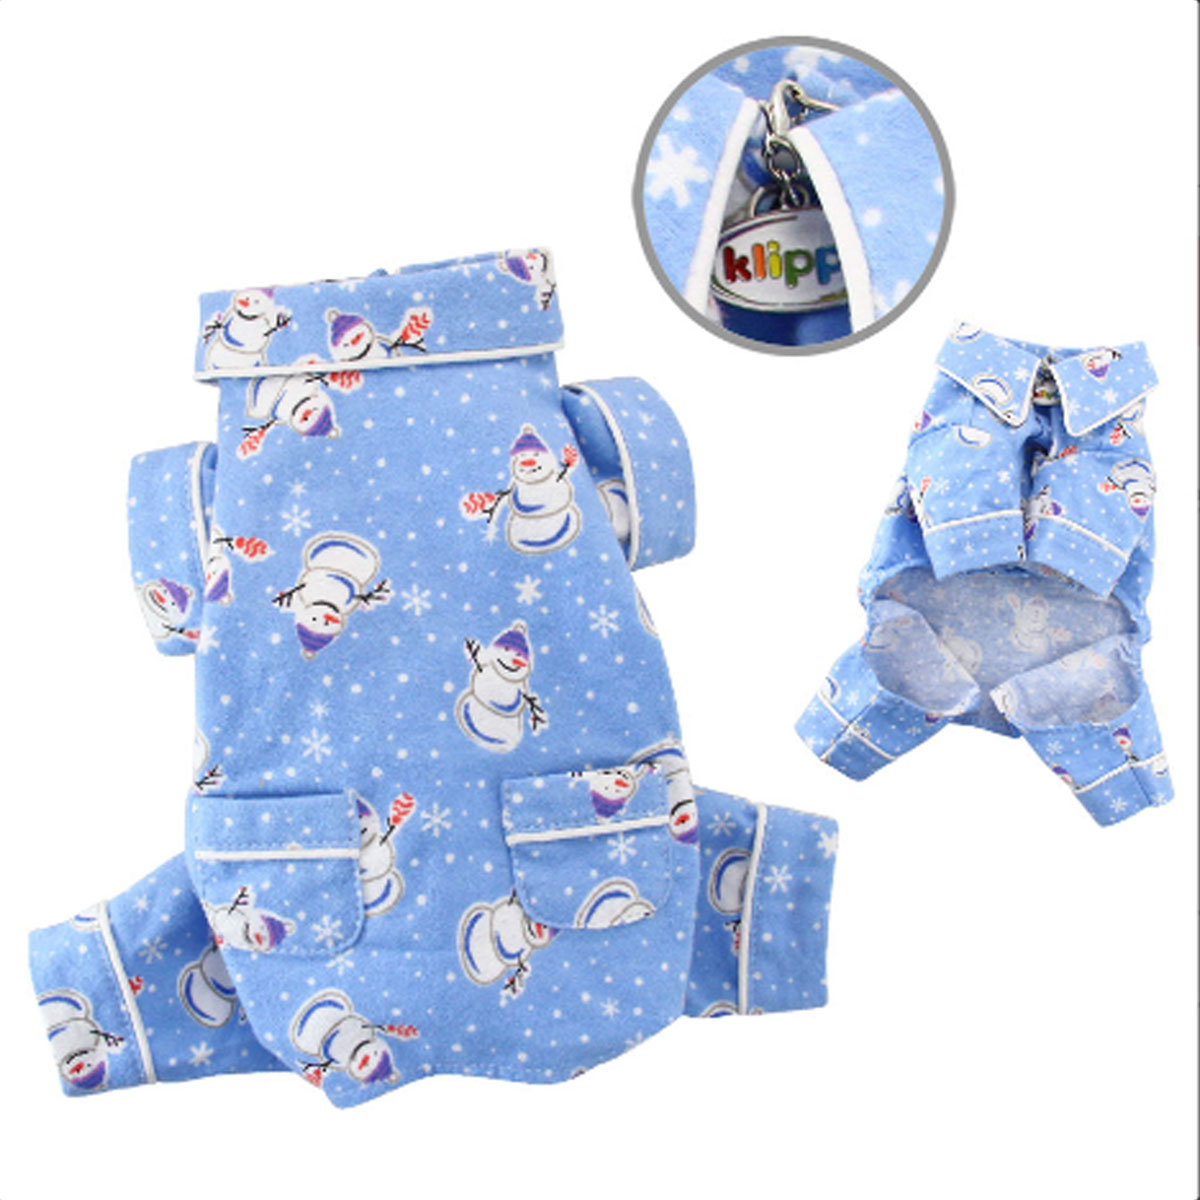 Snowmen and Snowflakes Flannel Dog Pajamas by Klippo with Same Day ...